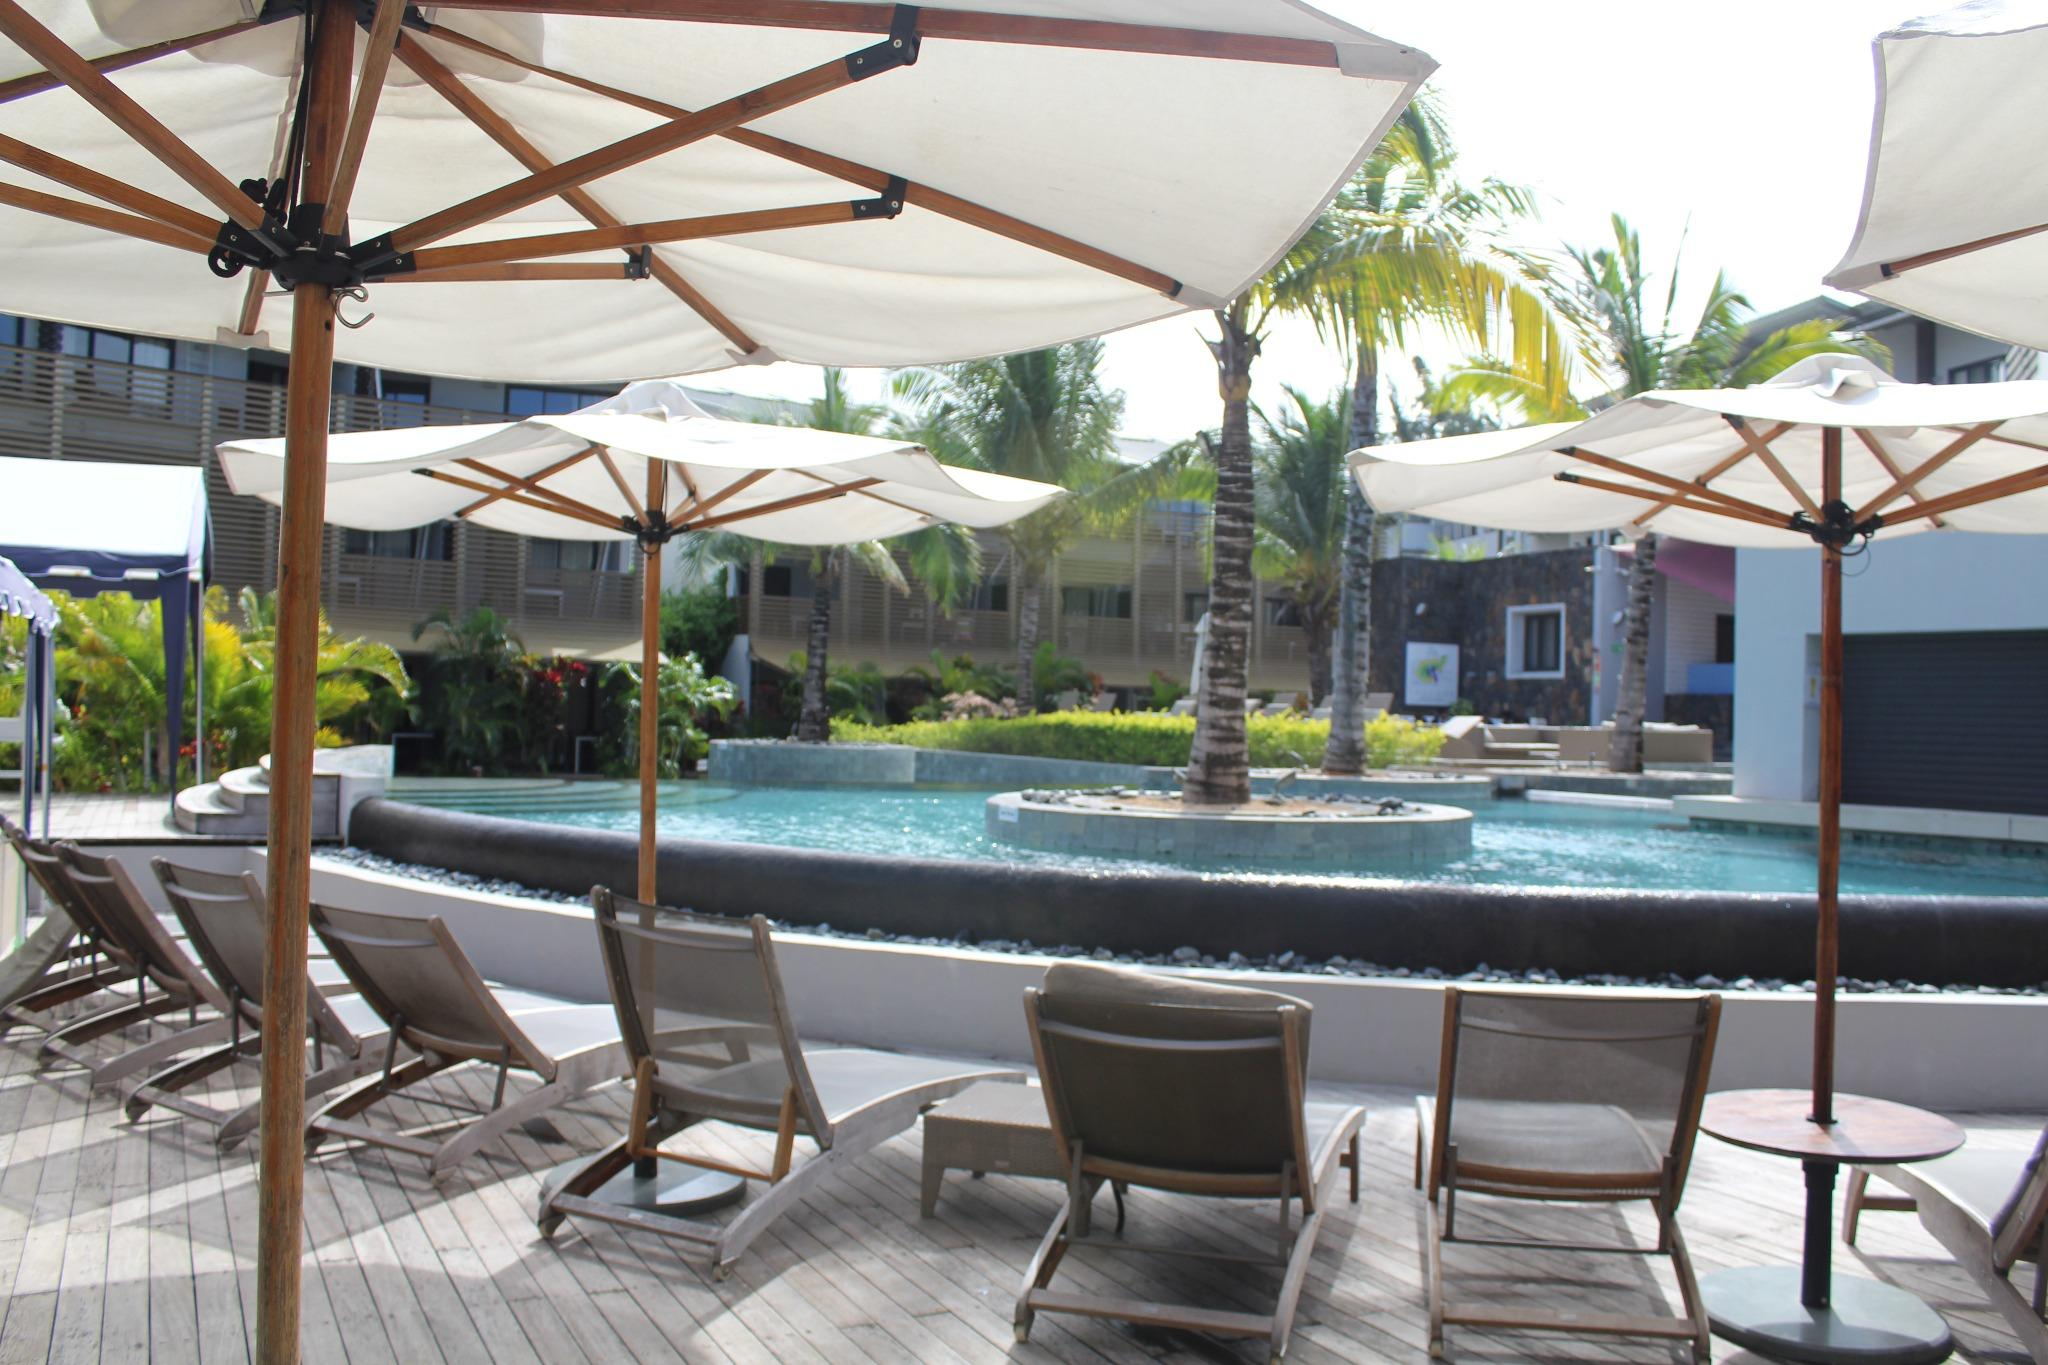 FOR SALE – Very beautiful furnished and equipped apartment of 103 m2 located in Be Cosy Hotel in Trou aux Biches